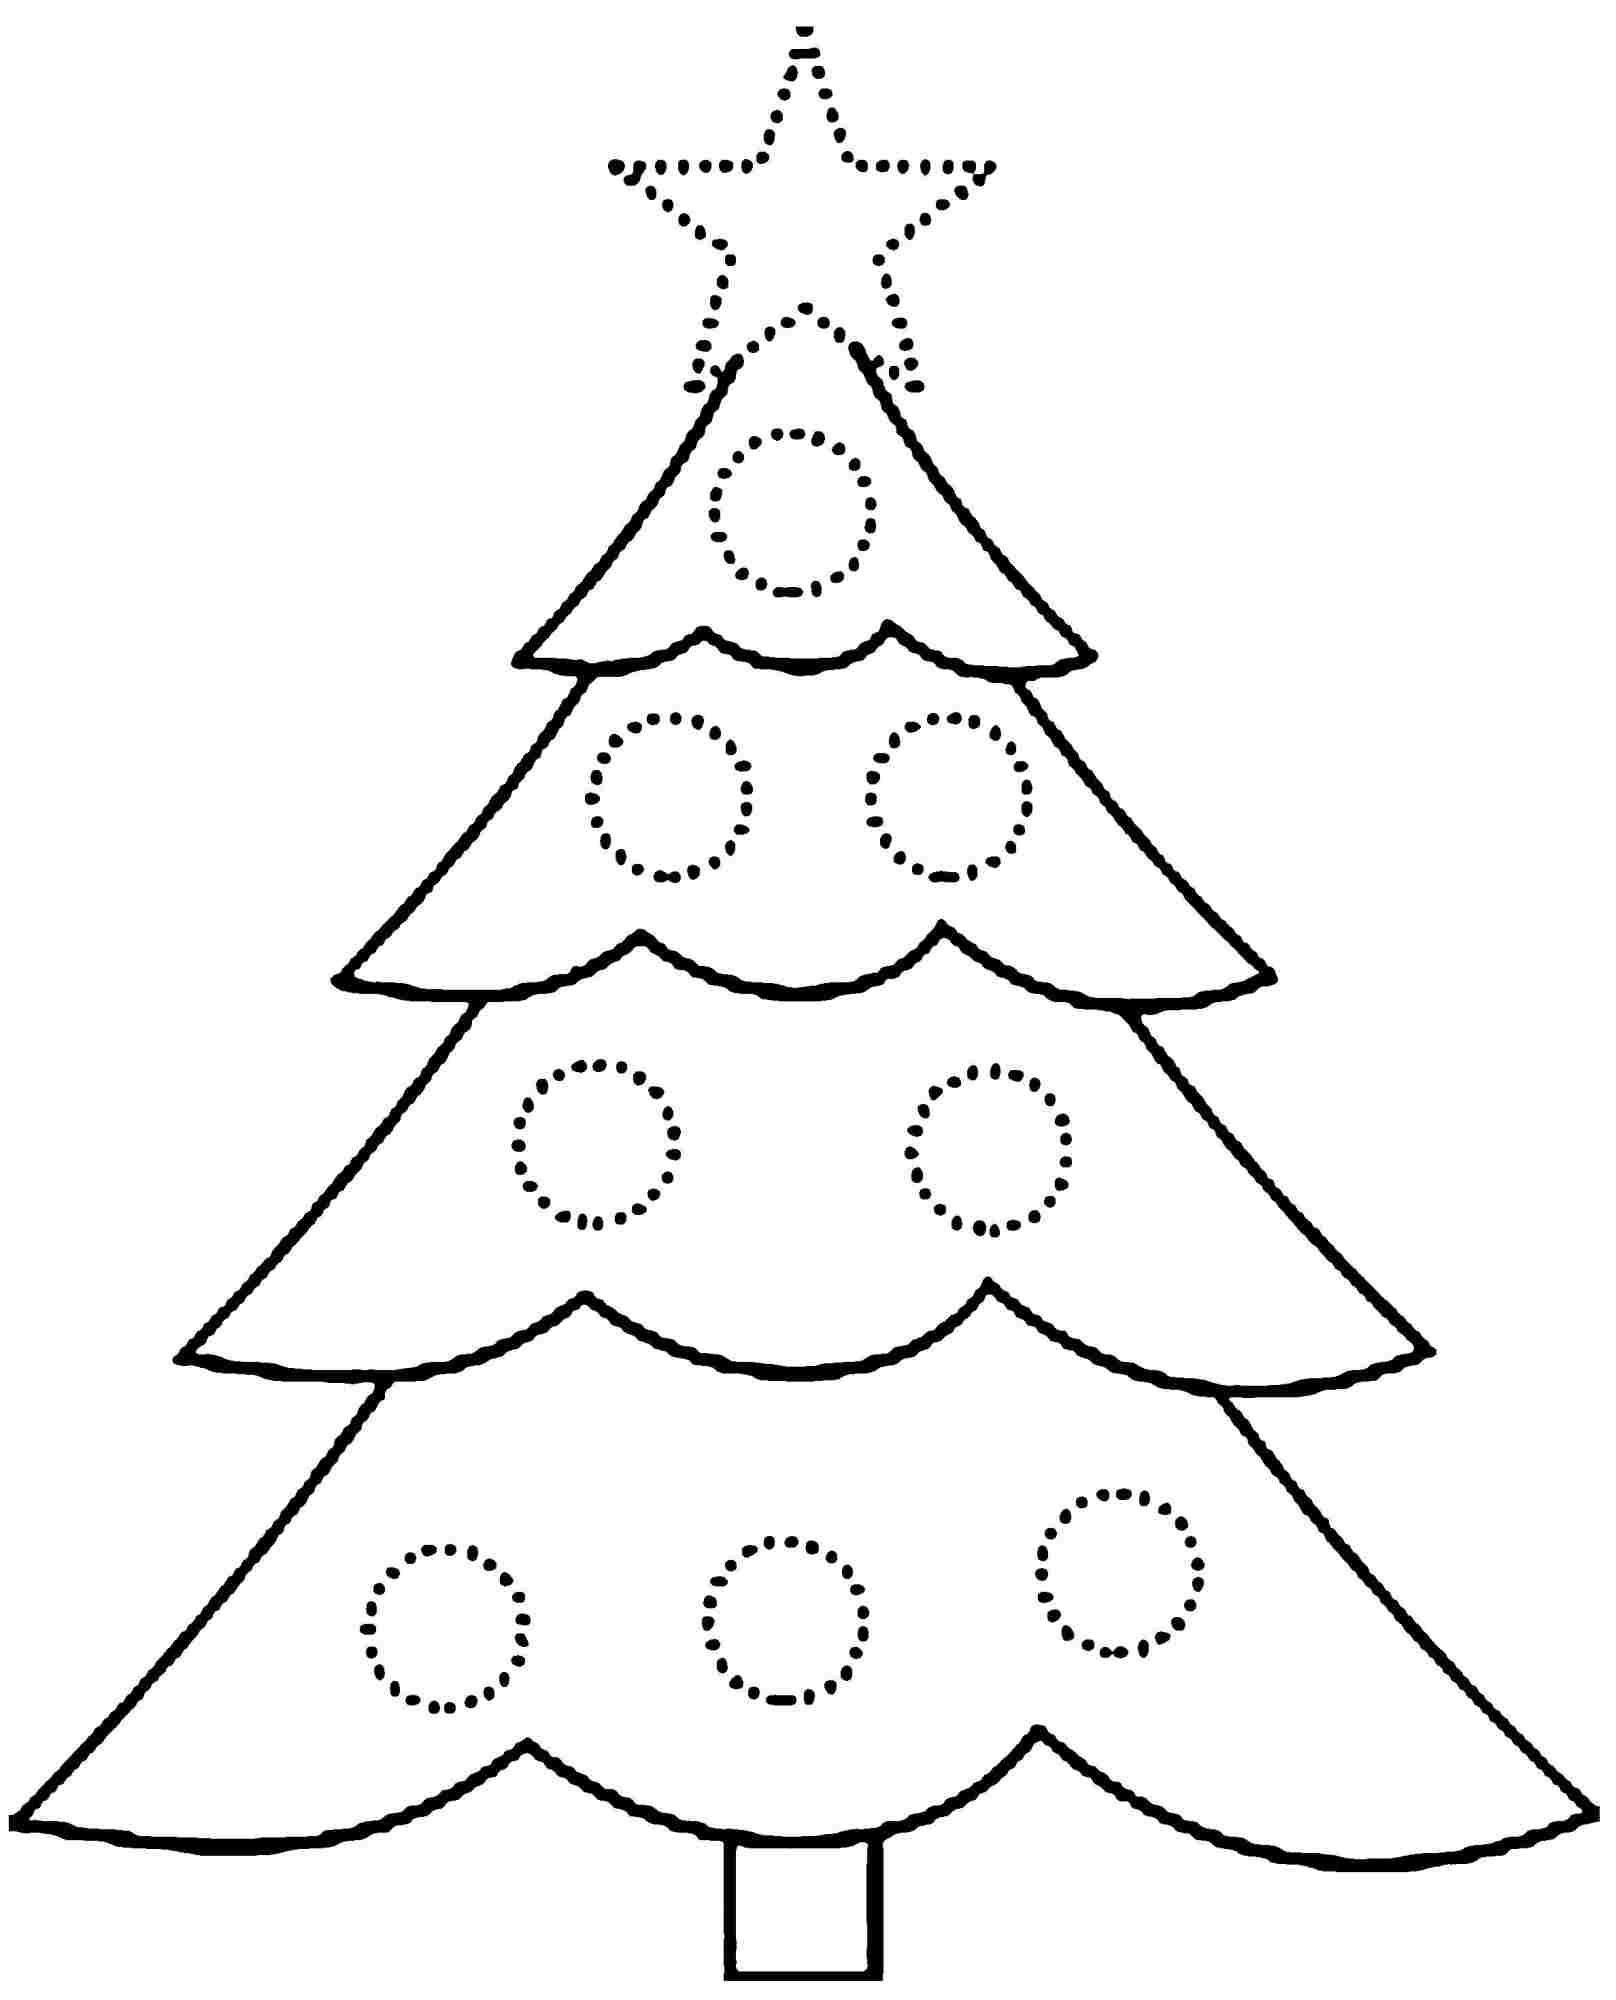 Coloring Pages For Toddlers Christmas at GetDrawings.com ...